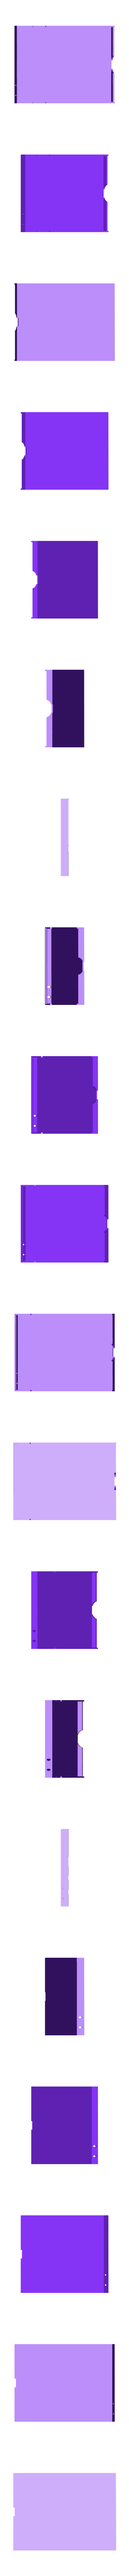 """CutTicketCaseA.stl Download free STL file Home Depot """"Cut Ticket"""" Notebook Holder #RetailTools UPDATED 2015-05-11 • 3D printing object, tonyyoungblood"""